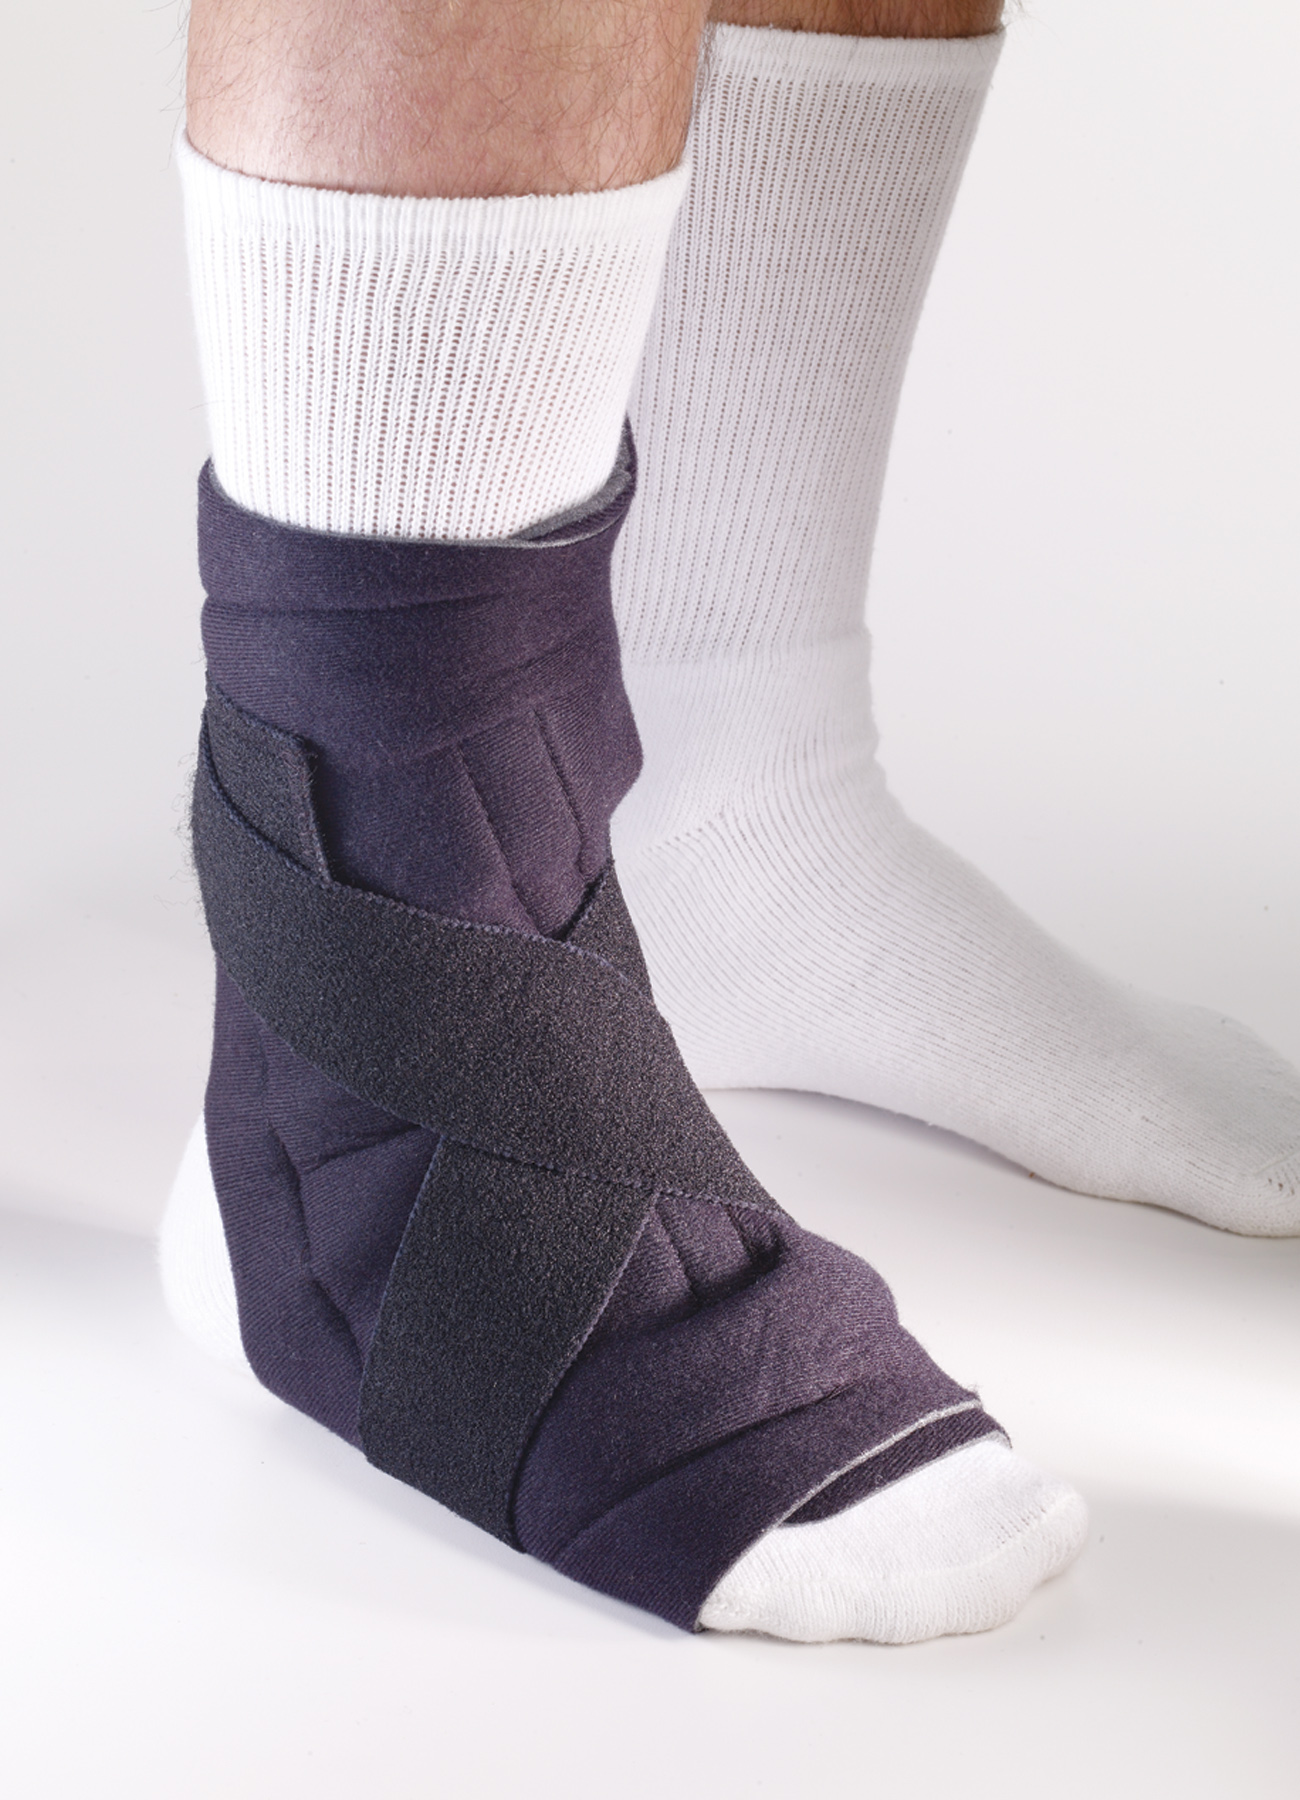 Cryotherm Ankle Wrap